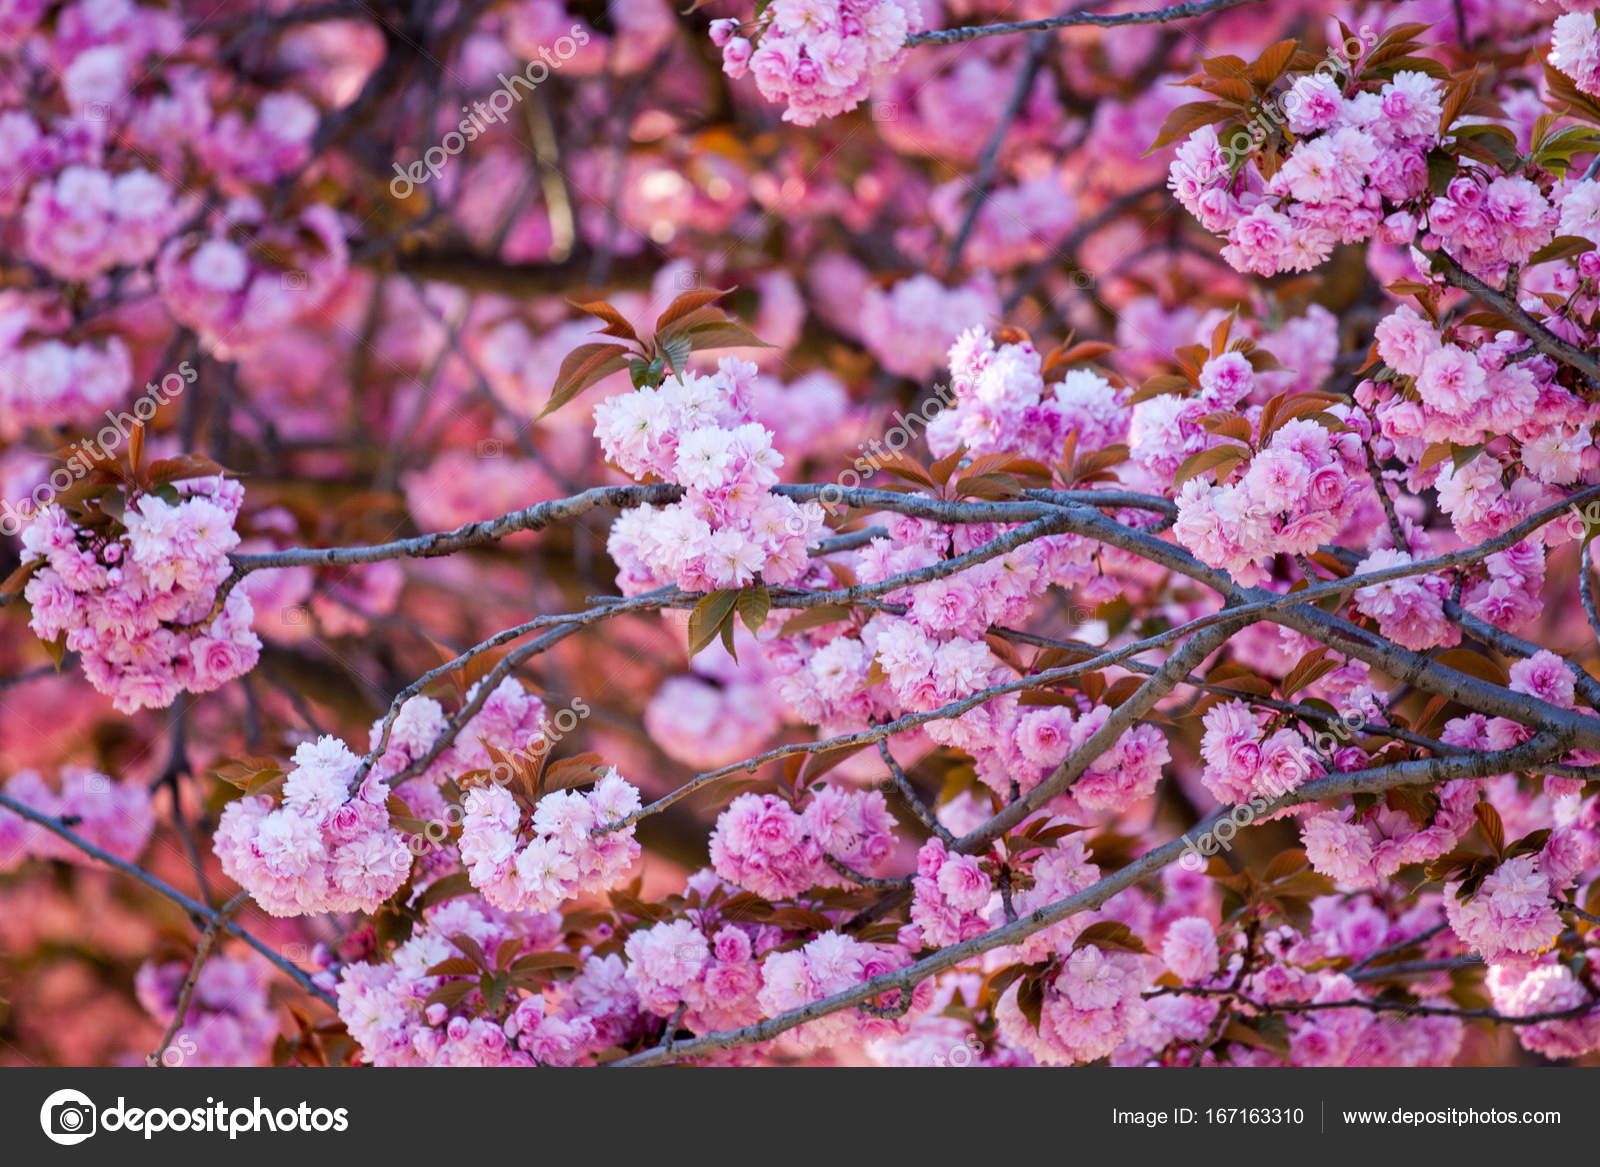 White Pink Flowers Of A Nut Tree Stock Photo Zheltikov 167163310